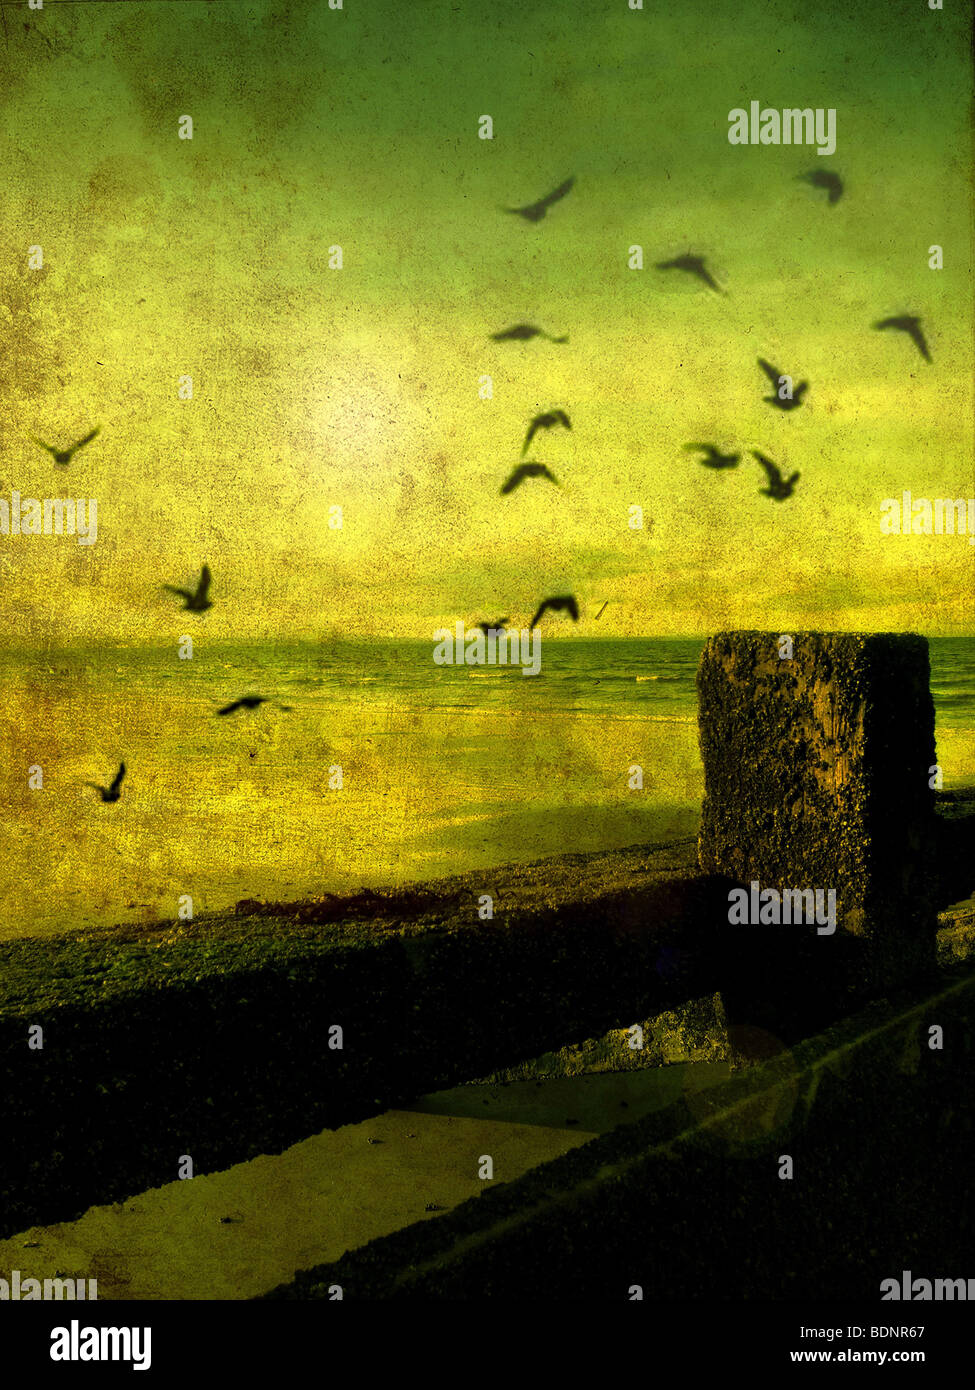 A flock of birds flying over a beach scene with breakers - Stock Image